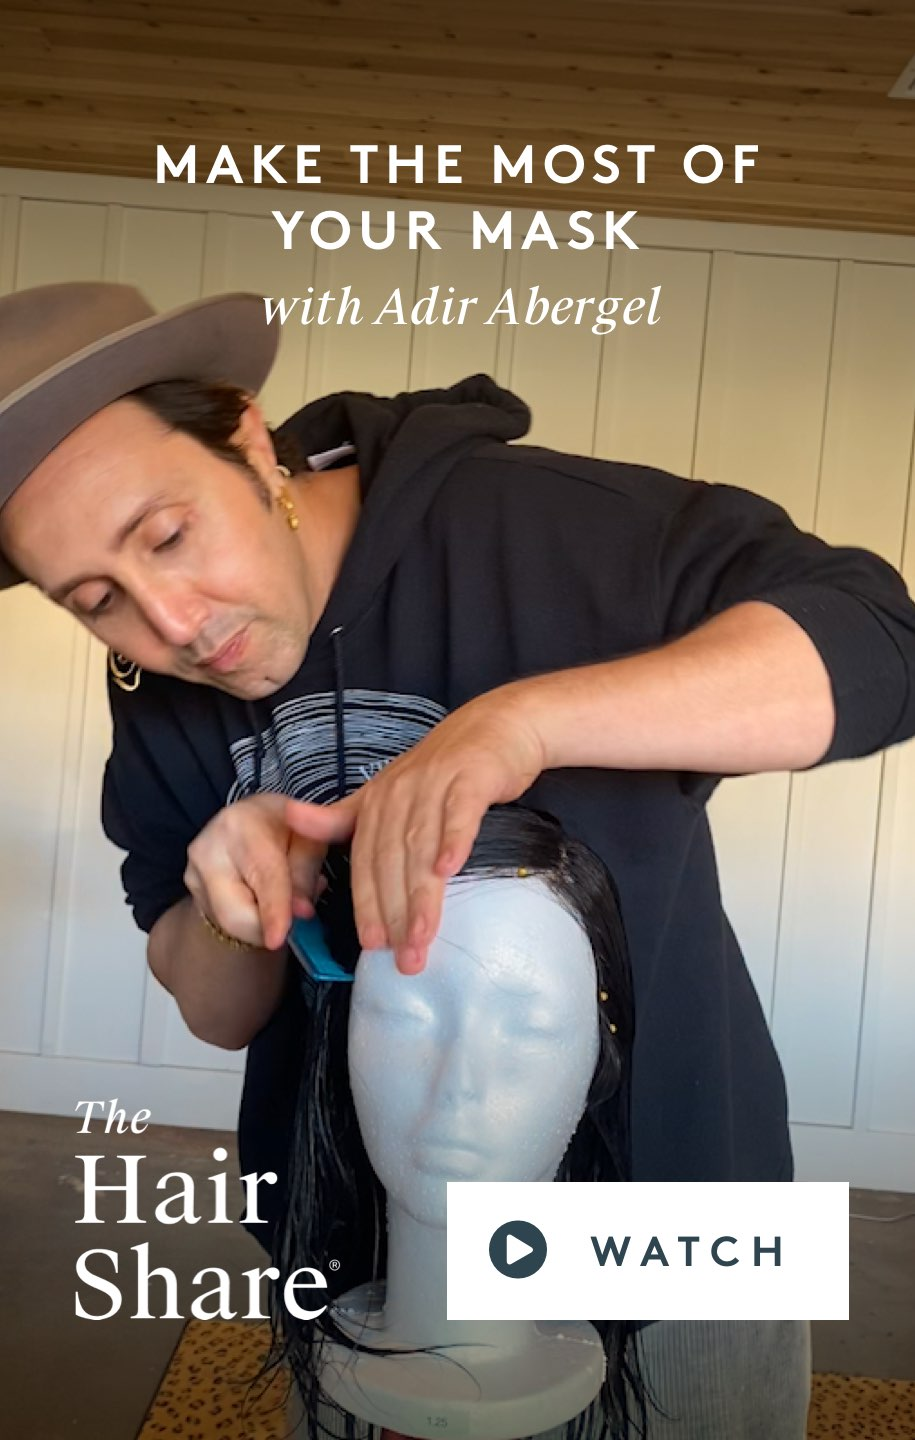 Make the Most of Your Mask with Adir Abergel